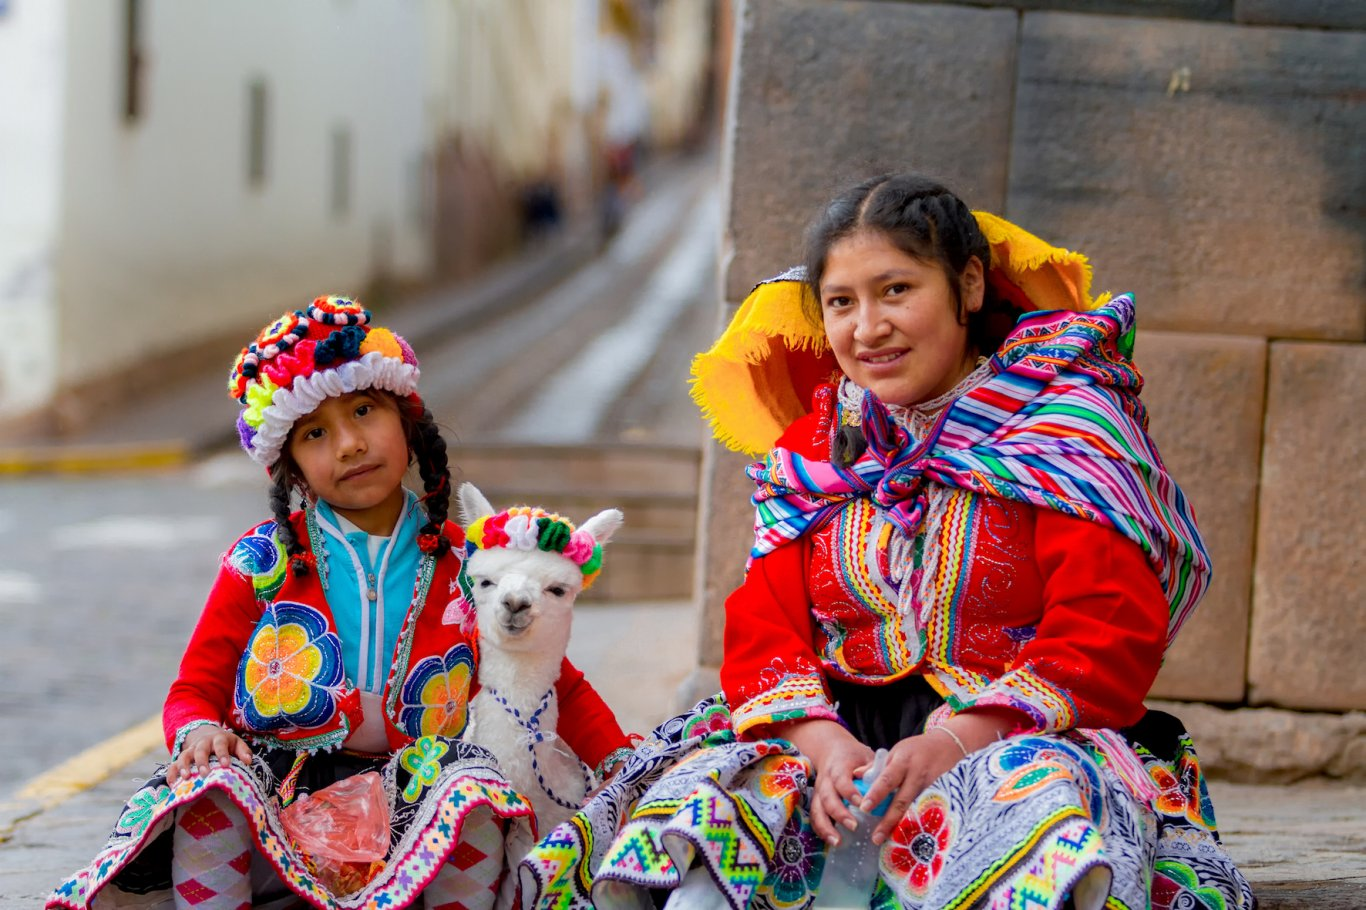 Local Peruvian family with Llama adorned in traditional Peruvian dress